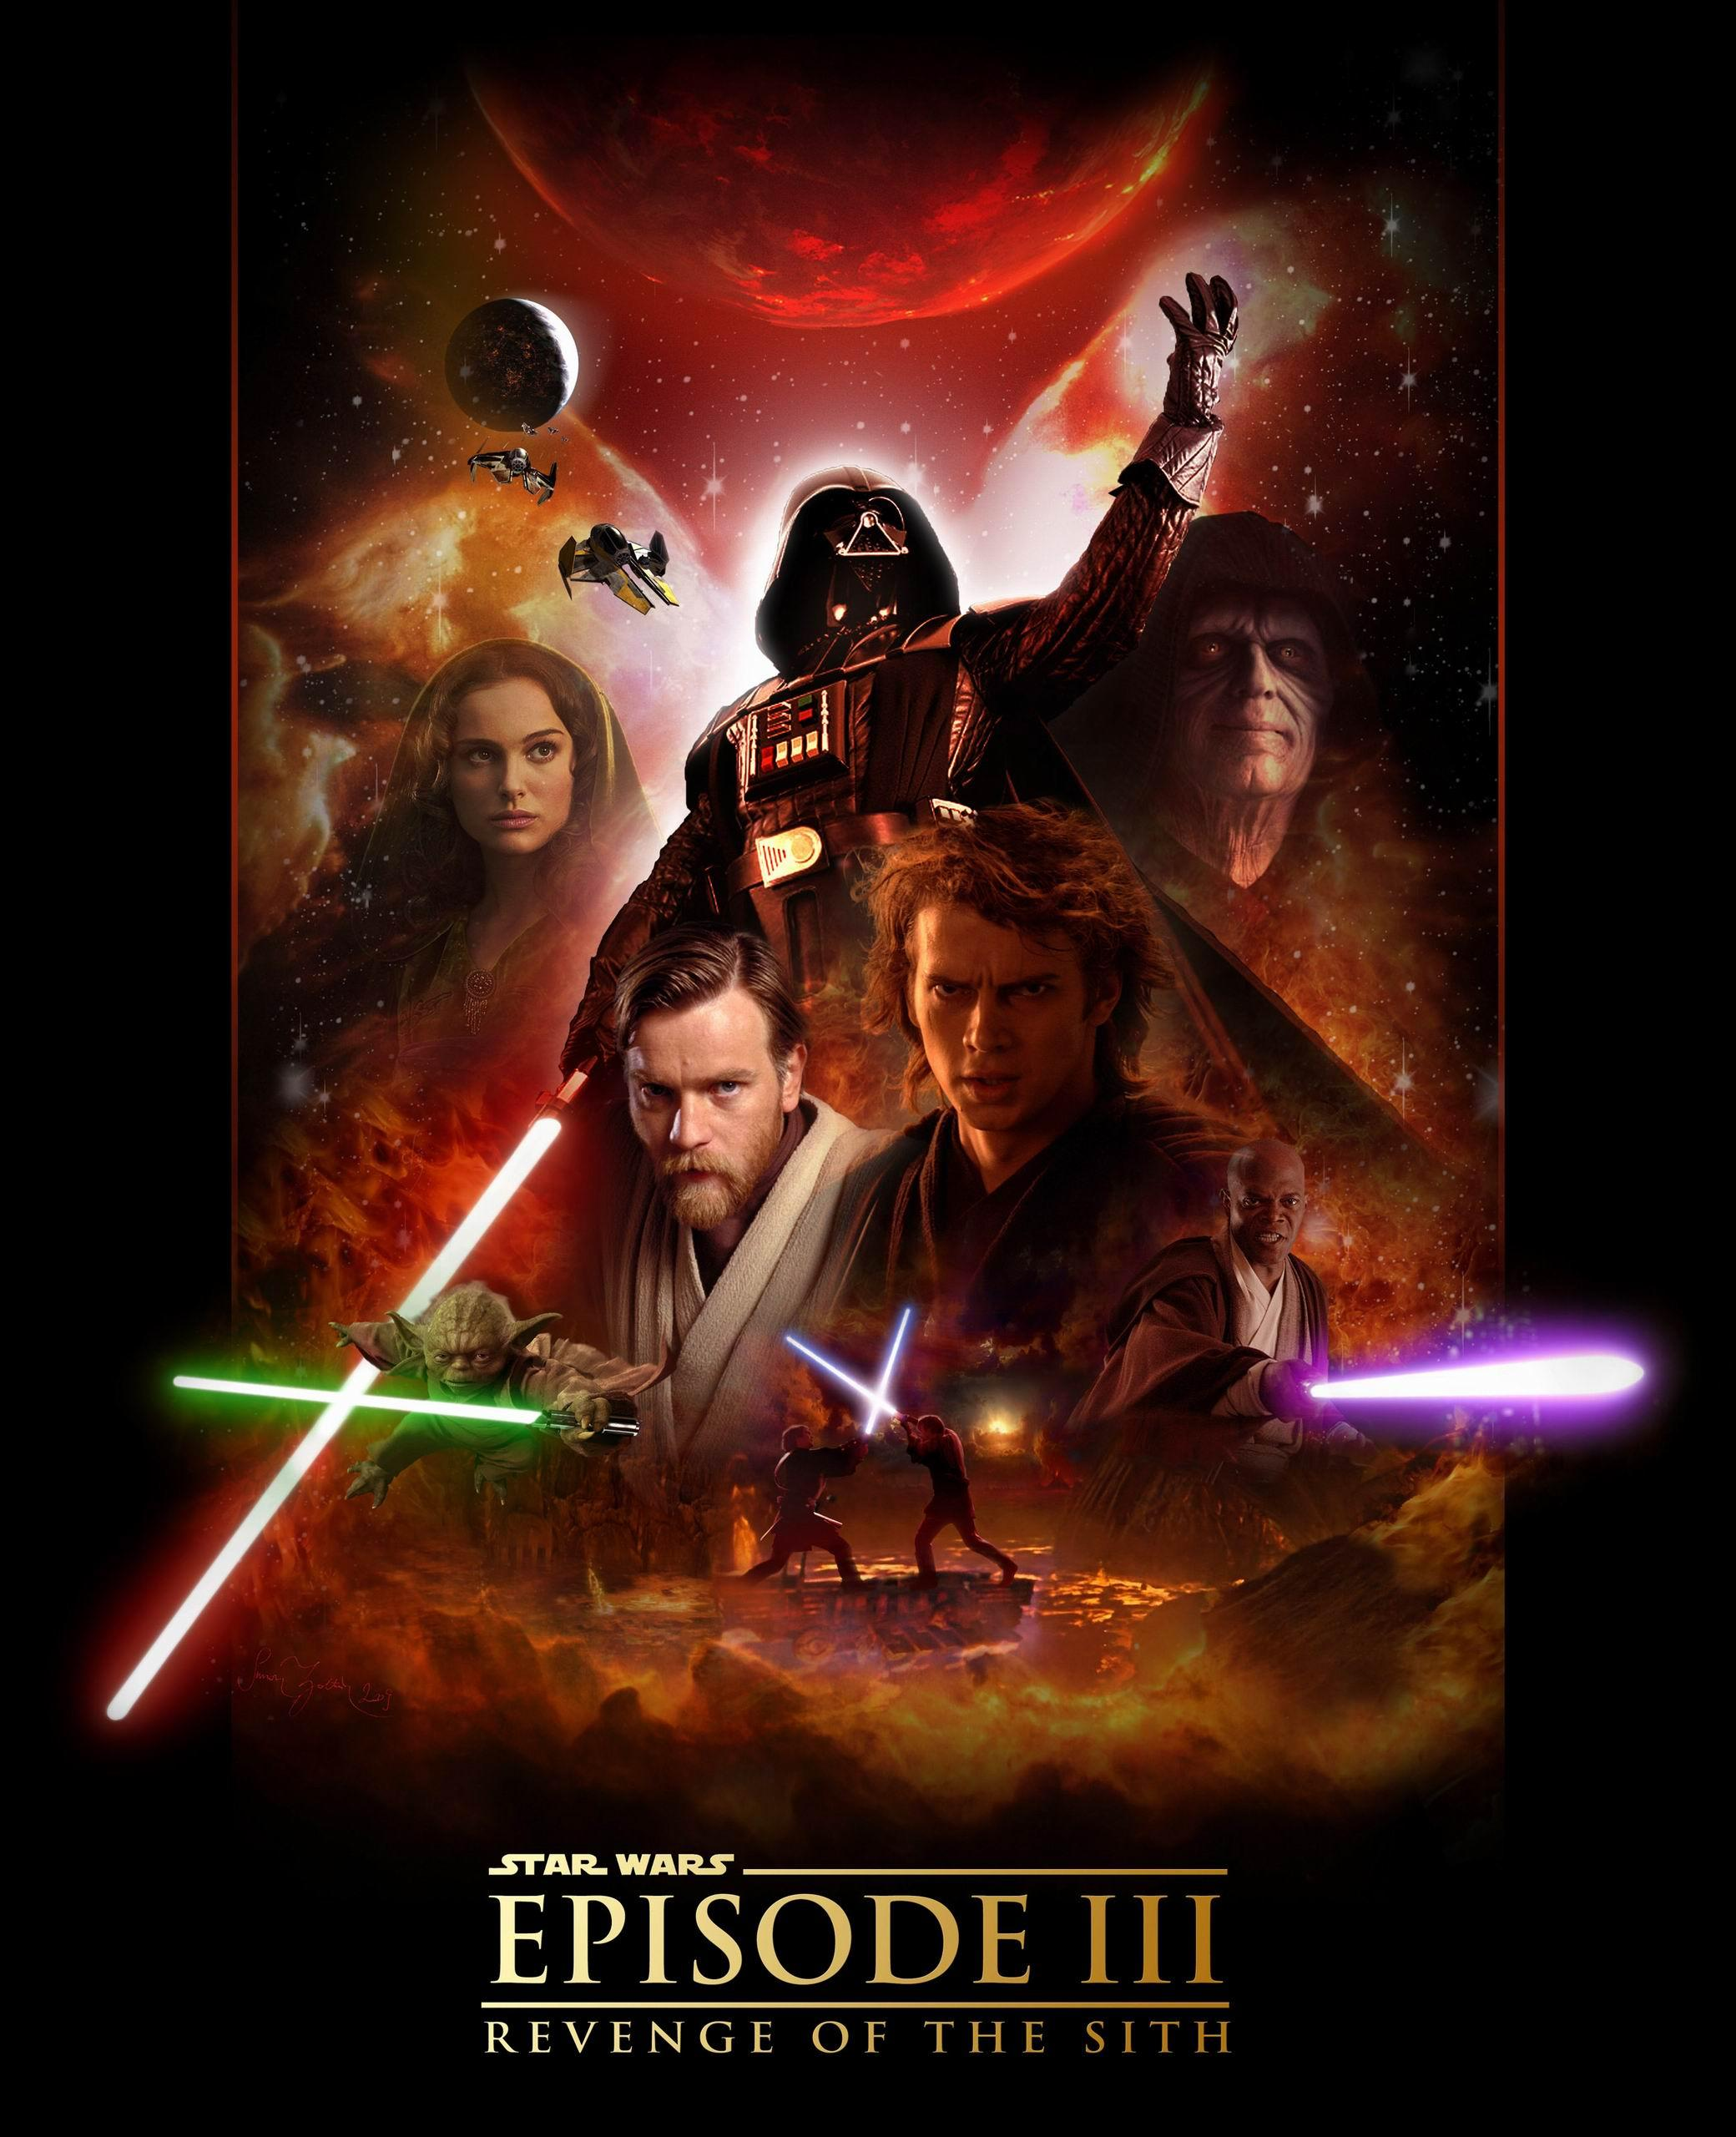 Star wars revenge of the sith icon | star wars dvd iconset | manueek.